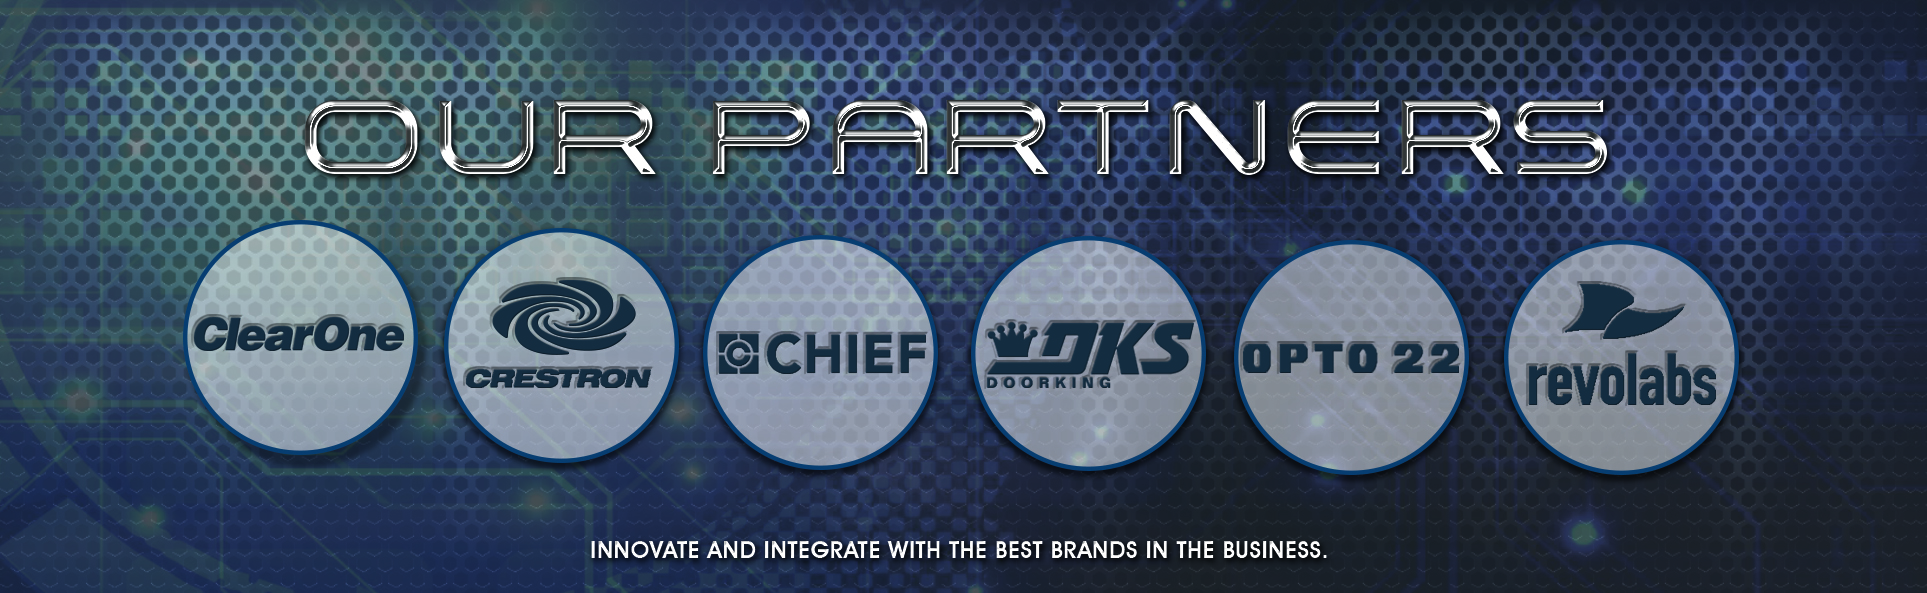 Our Partners: Crestron, Opto 22, Chief Mounts, Doorking, revoLabs, ClearOne